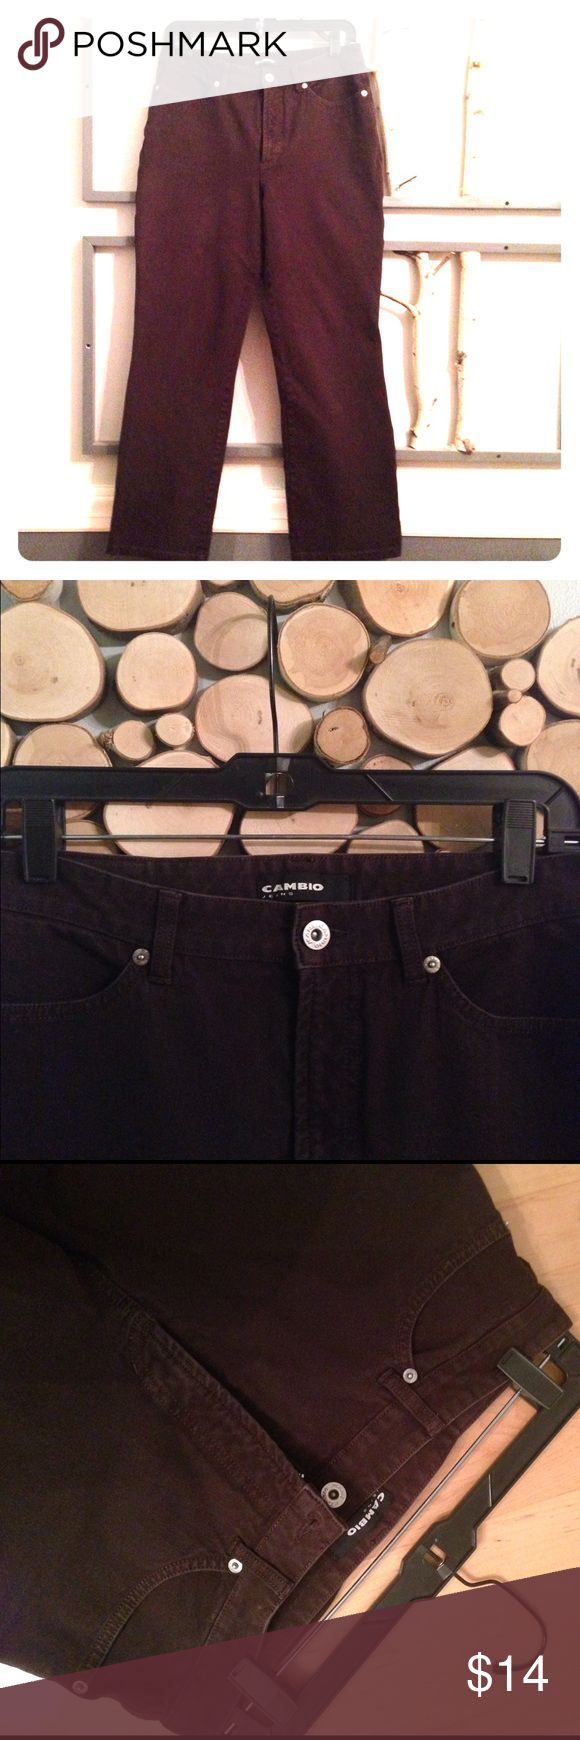 """Cambio Stretch Jeans These attractive dark brown jeans are form flatteringly stretchy and comfortable at 95cotton/5spandex.  Waist 15"""", Inseam 27.5"""". VGUC Cambio Jeans Straight Leg"""